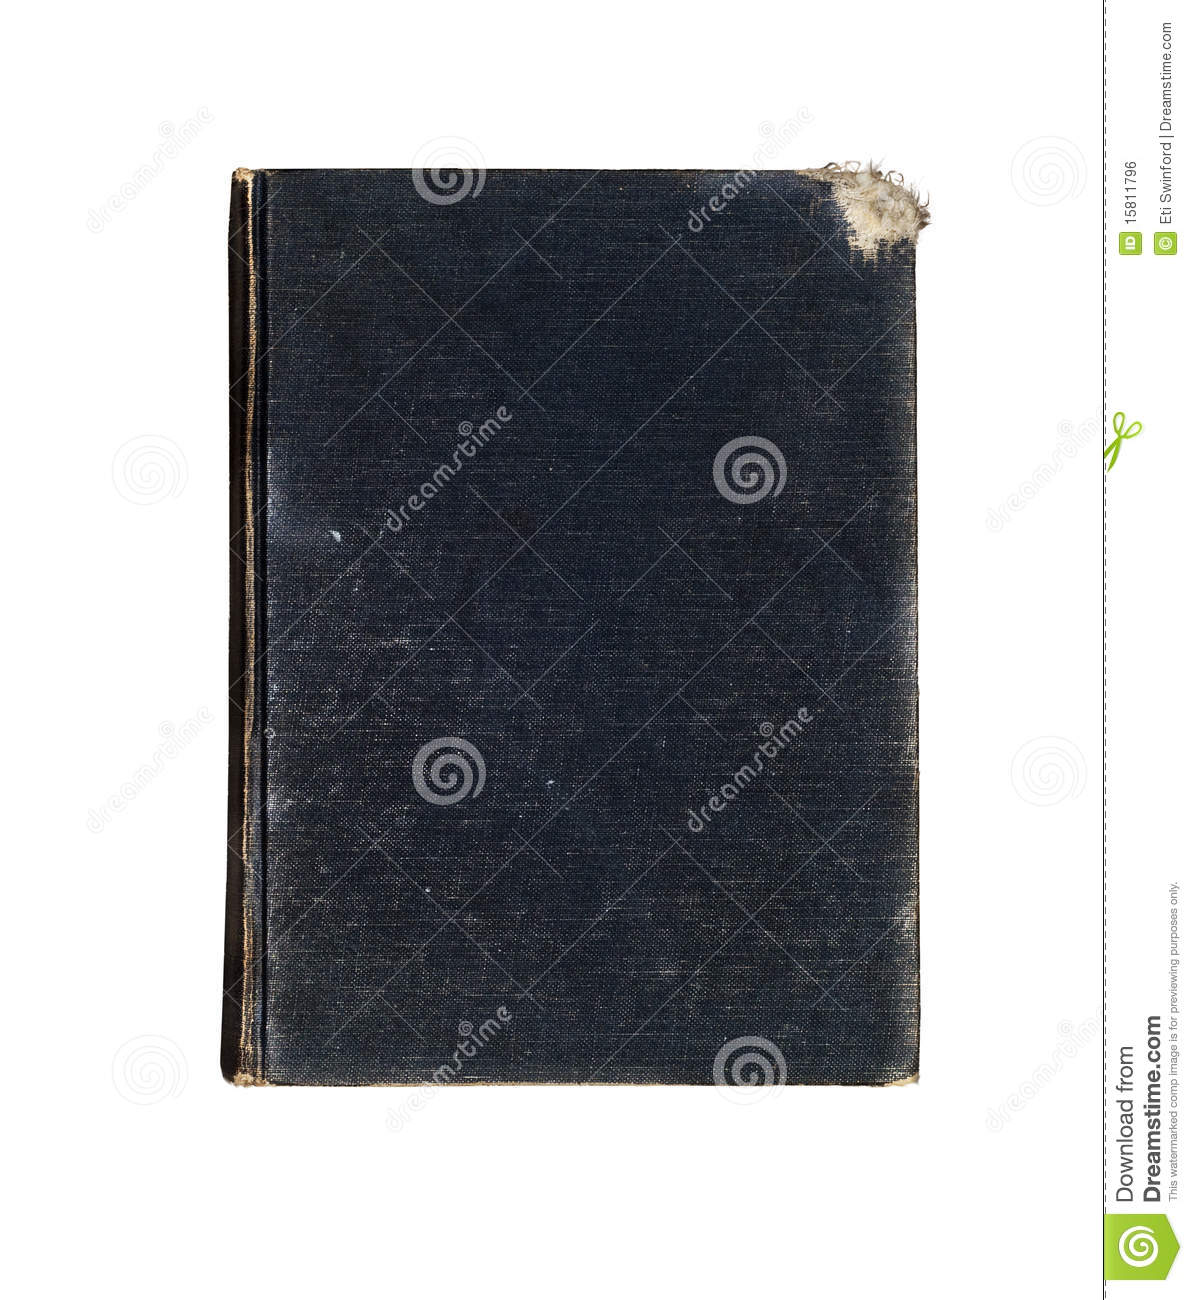 Book Cover Images Royalty Free : Book cover stock photo image of textured black